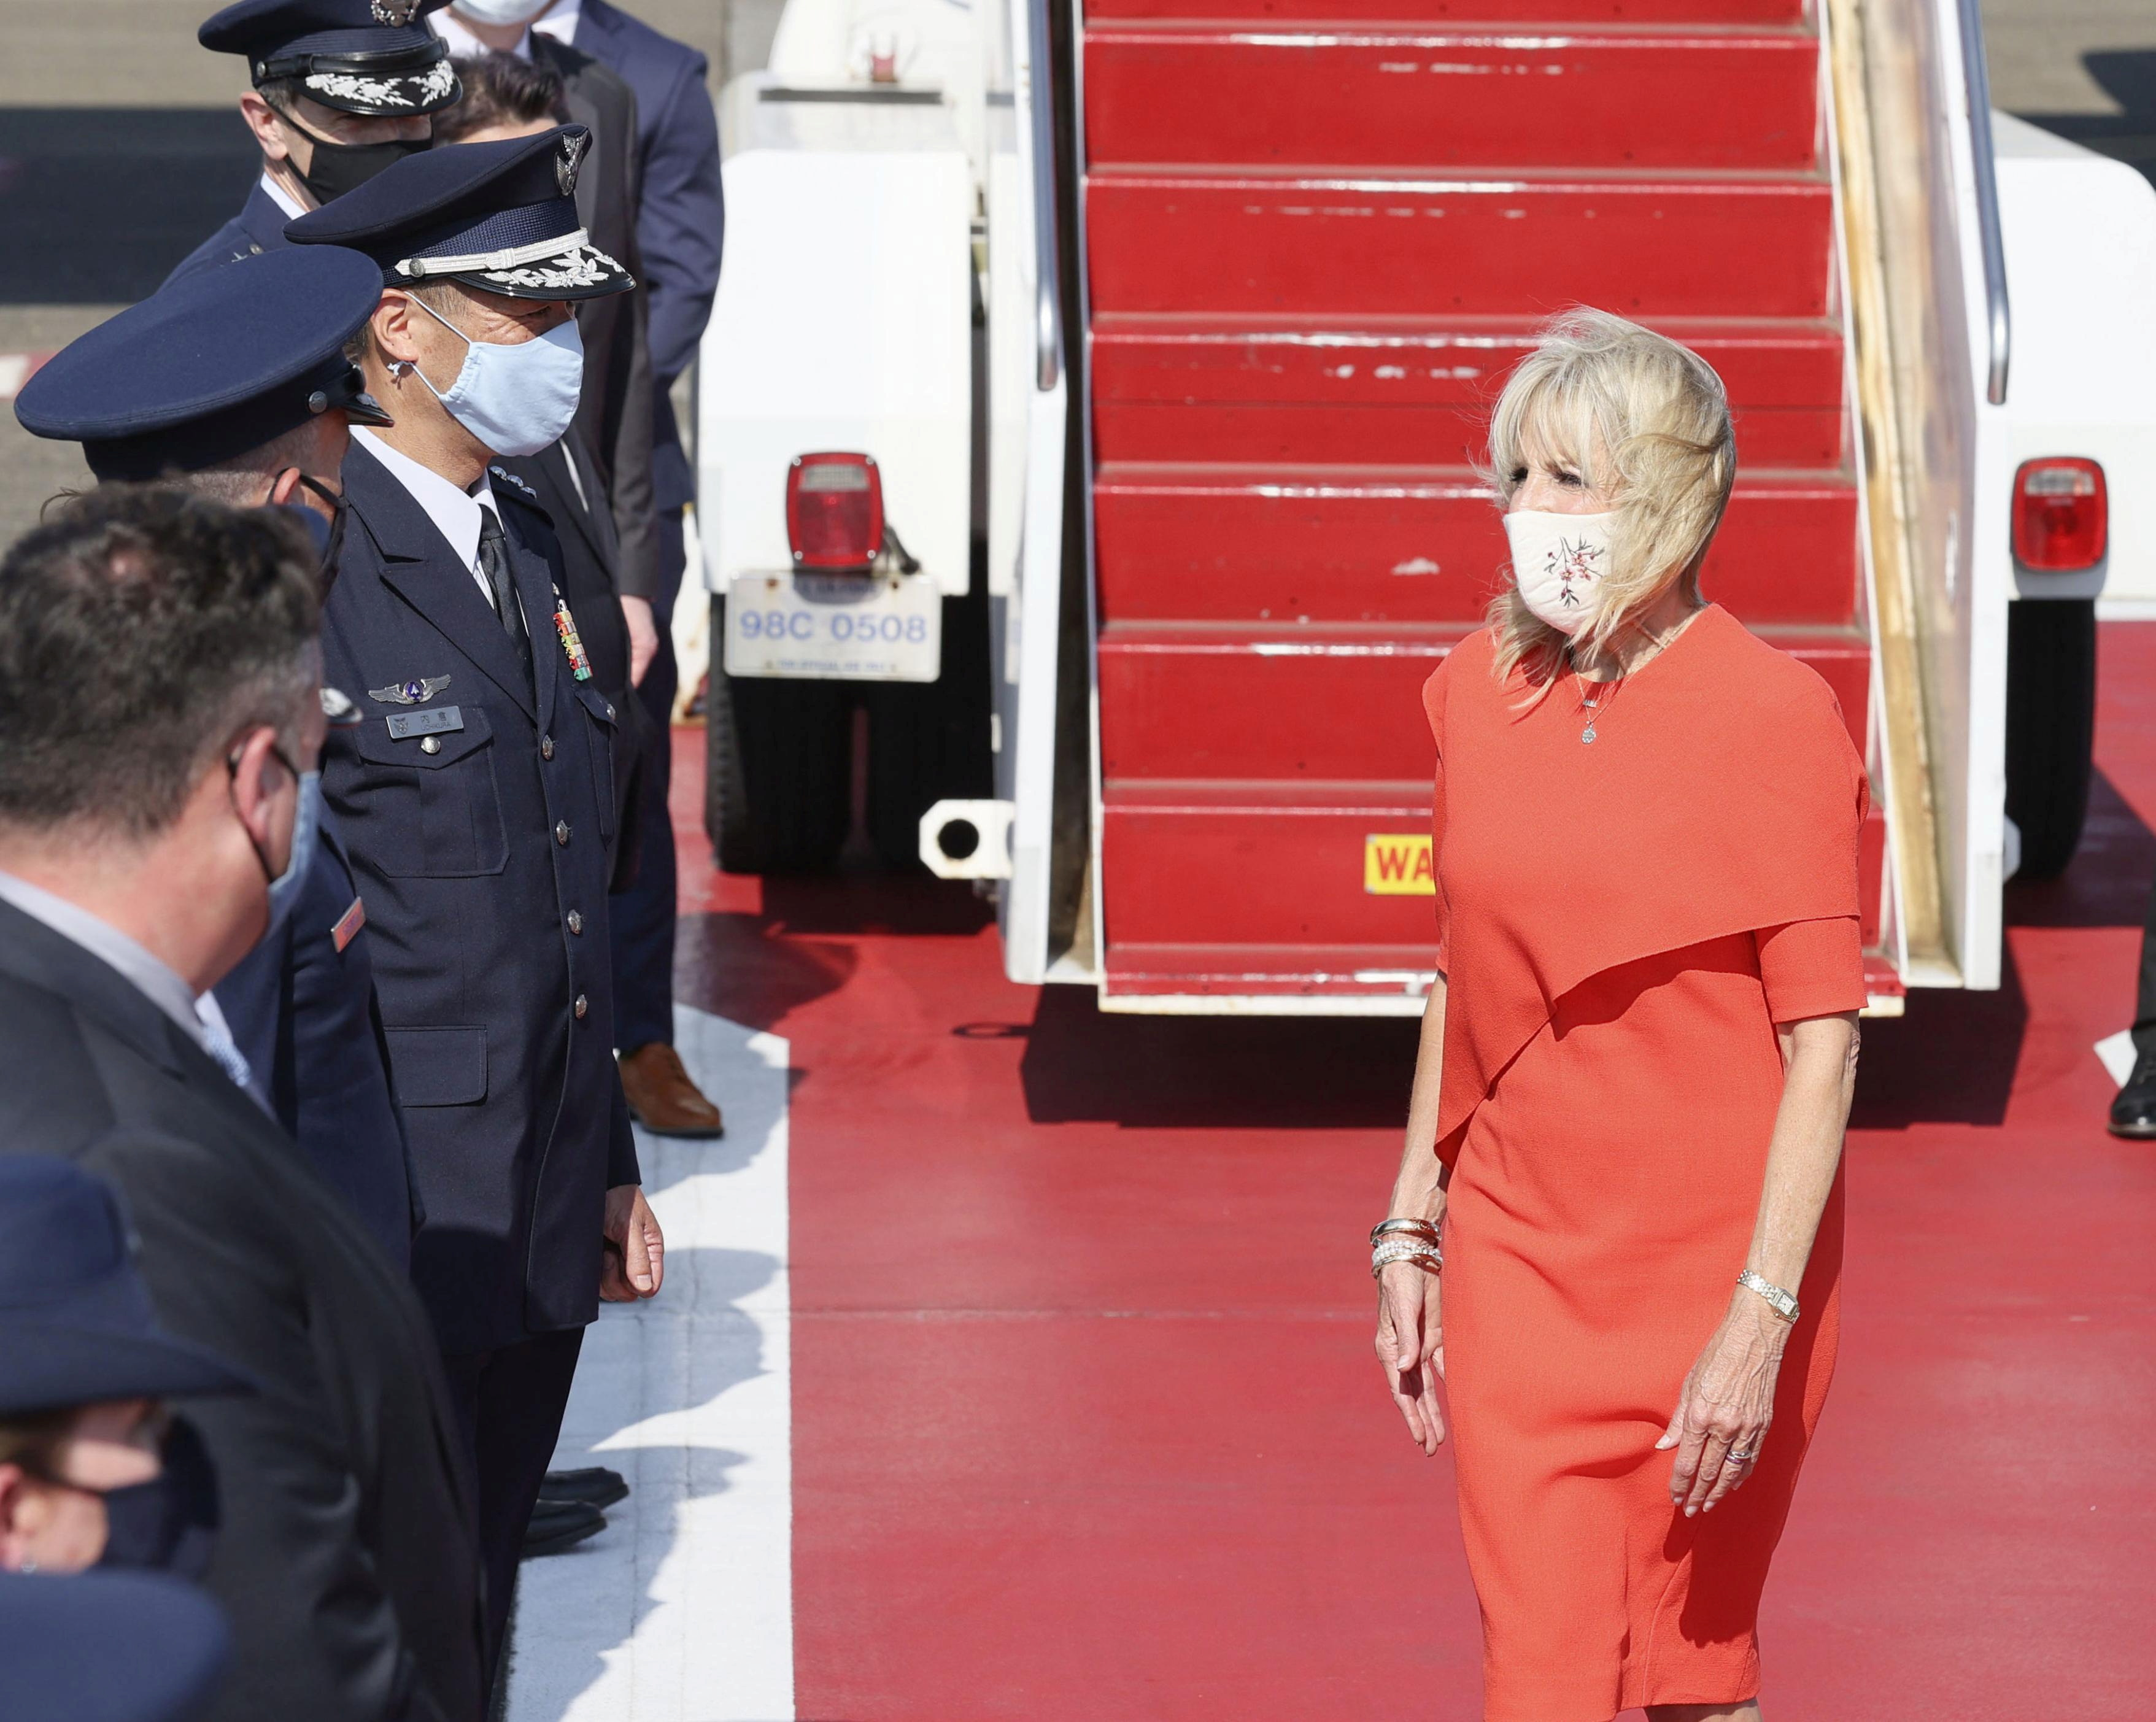 U.S. First Lady Jill Biden is greeted by Japanese and U.S delegates upon her arrival at Yokota Air Base for attending the opening ceremony of the Tokyo 2020 Olympic Games in Tokyo July 22, 2021, Japan, in this photo released by Kyodo. Mandatory credit Kyodo/via REUTERS